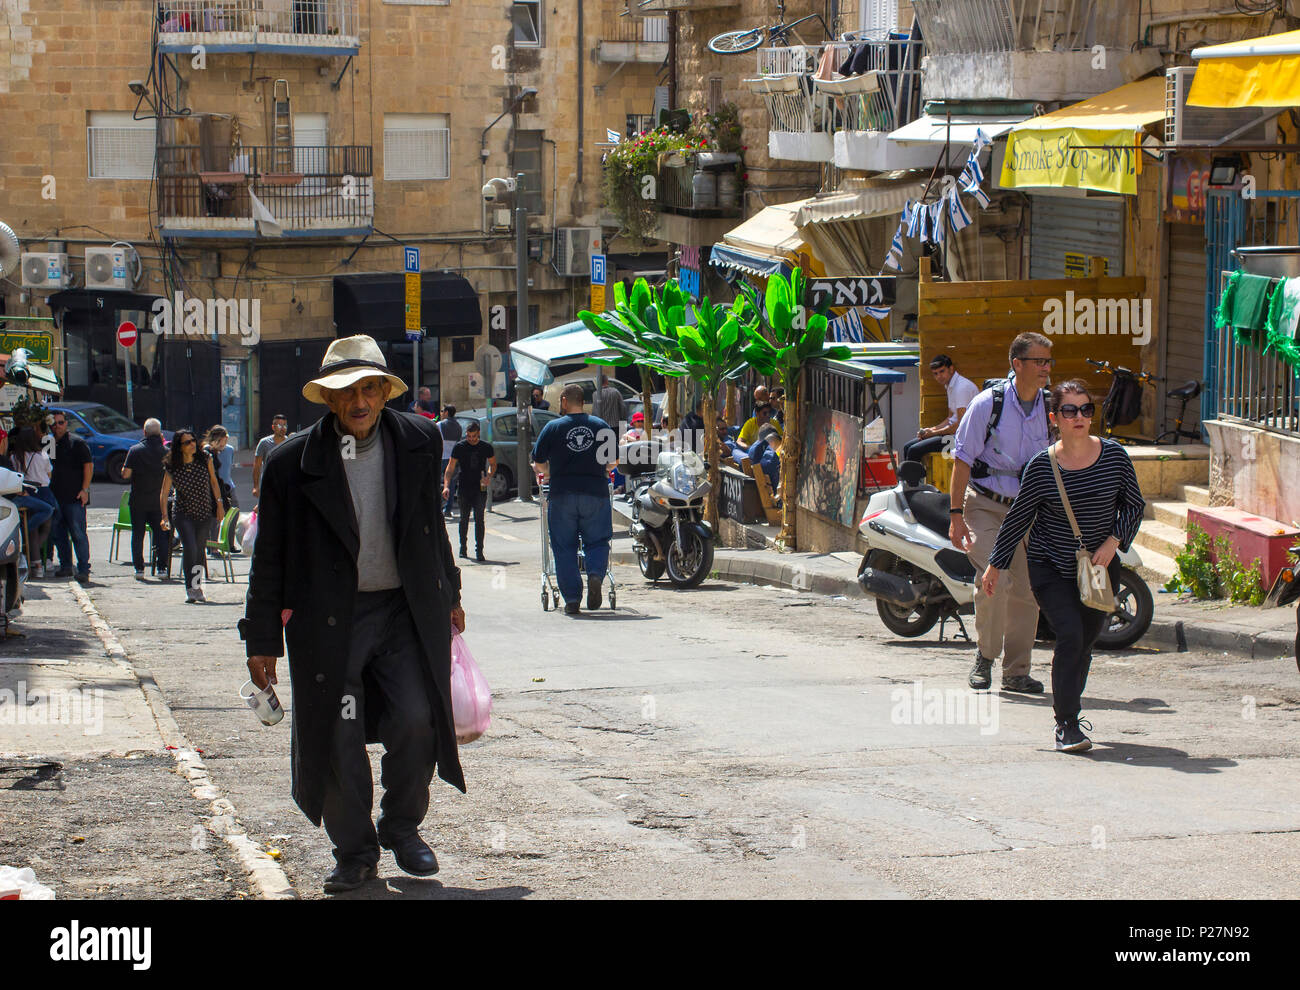 9 May 2018 An aged man in a long dark coat and floppy hat making his way up a hill at the busy Mahane Yehuda street market in Jerusalem Israel - Stock Image